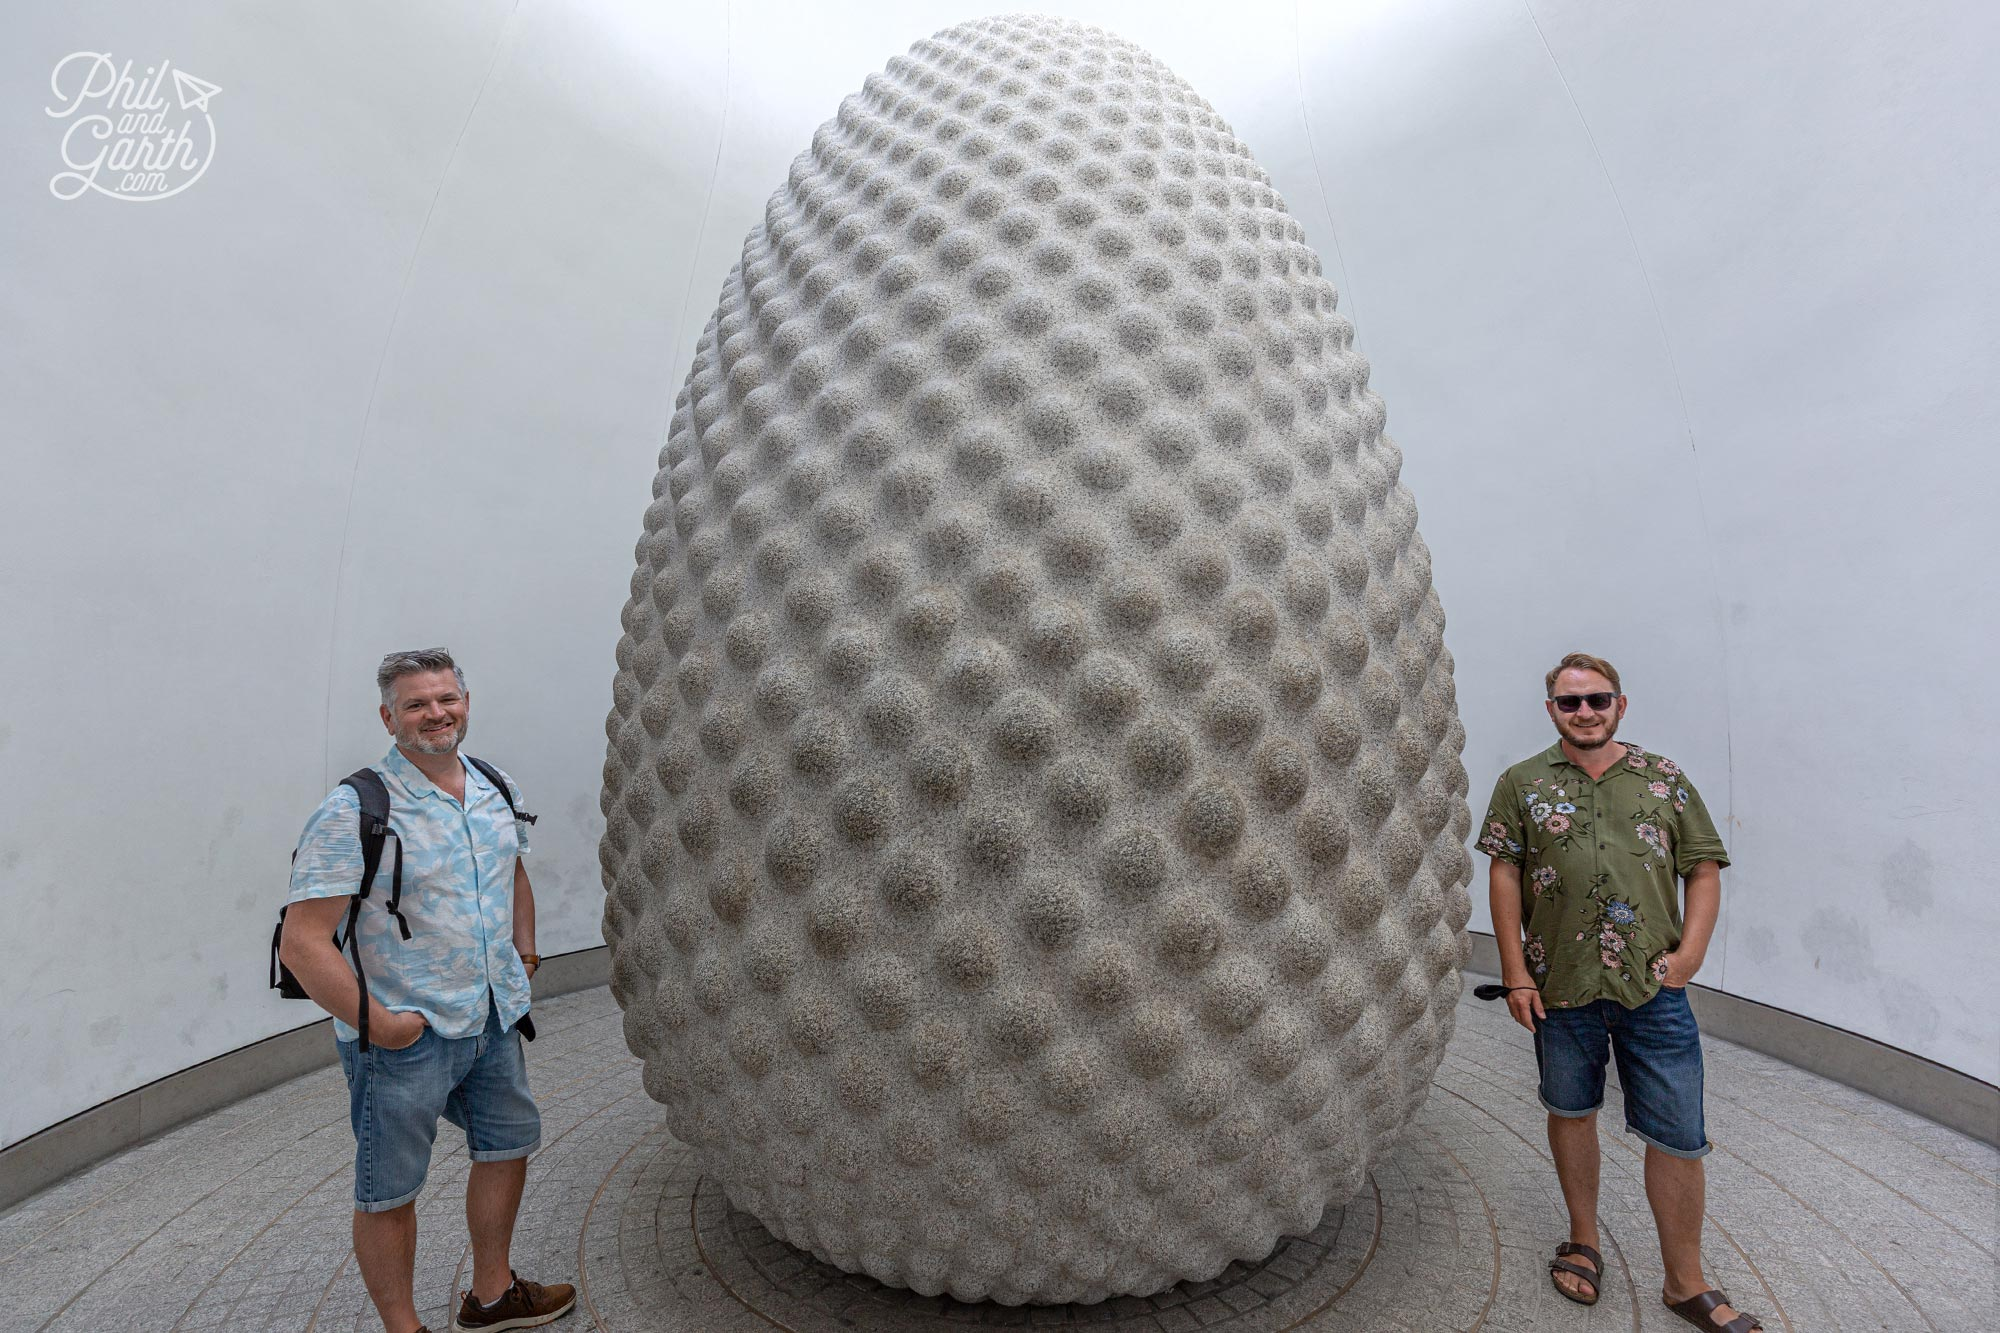 The Seed - a cool sculpture designed and created by Peter Randall Page